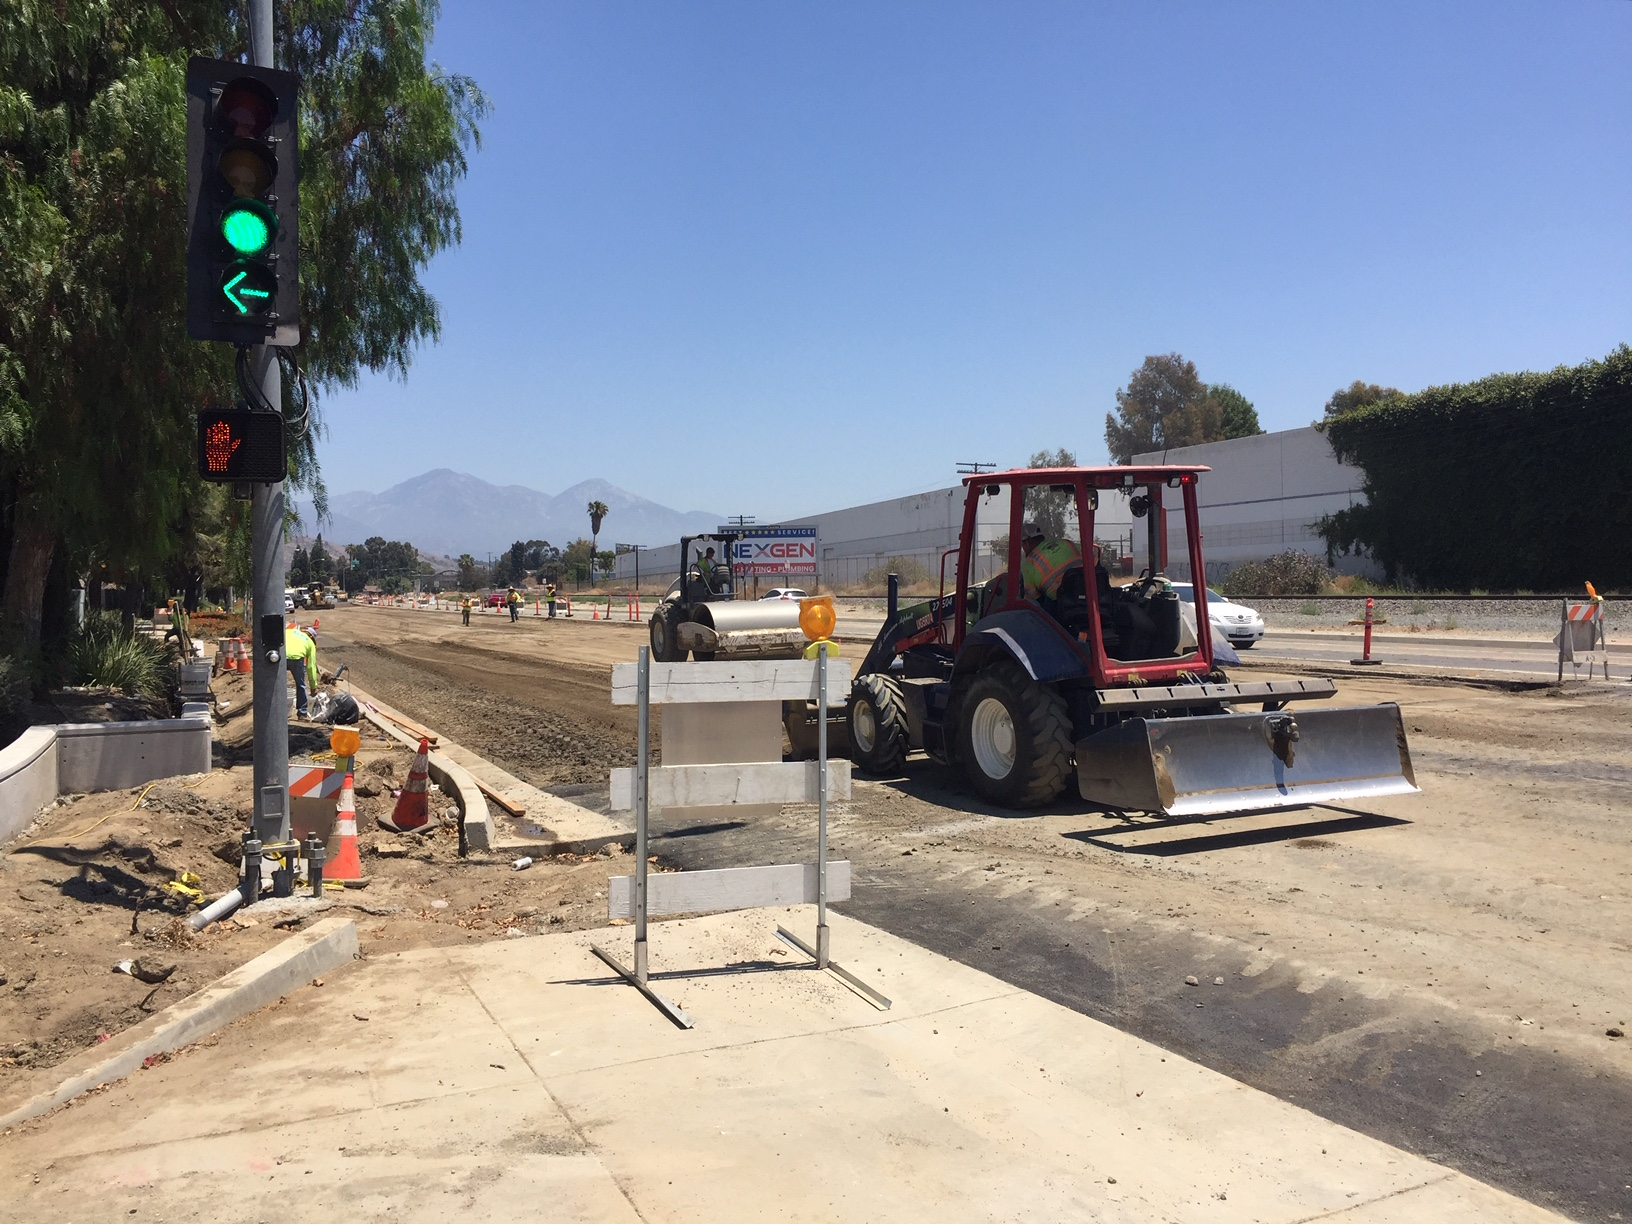 Construction on Valley Boulevard will eventually include a completed protected bike lane, yet no sign of the infrastructure is seen. Joe Linton/Streetsblog LA